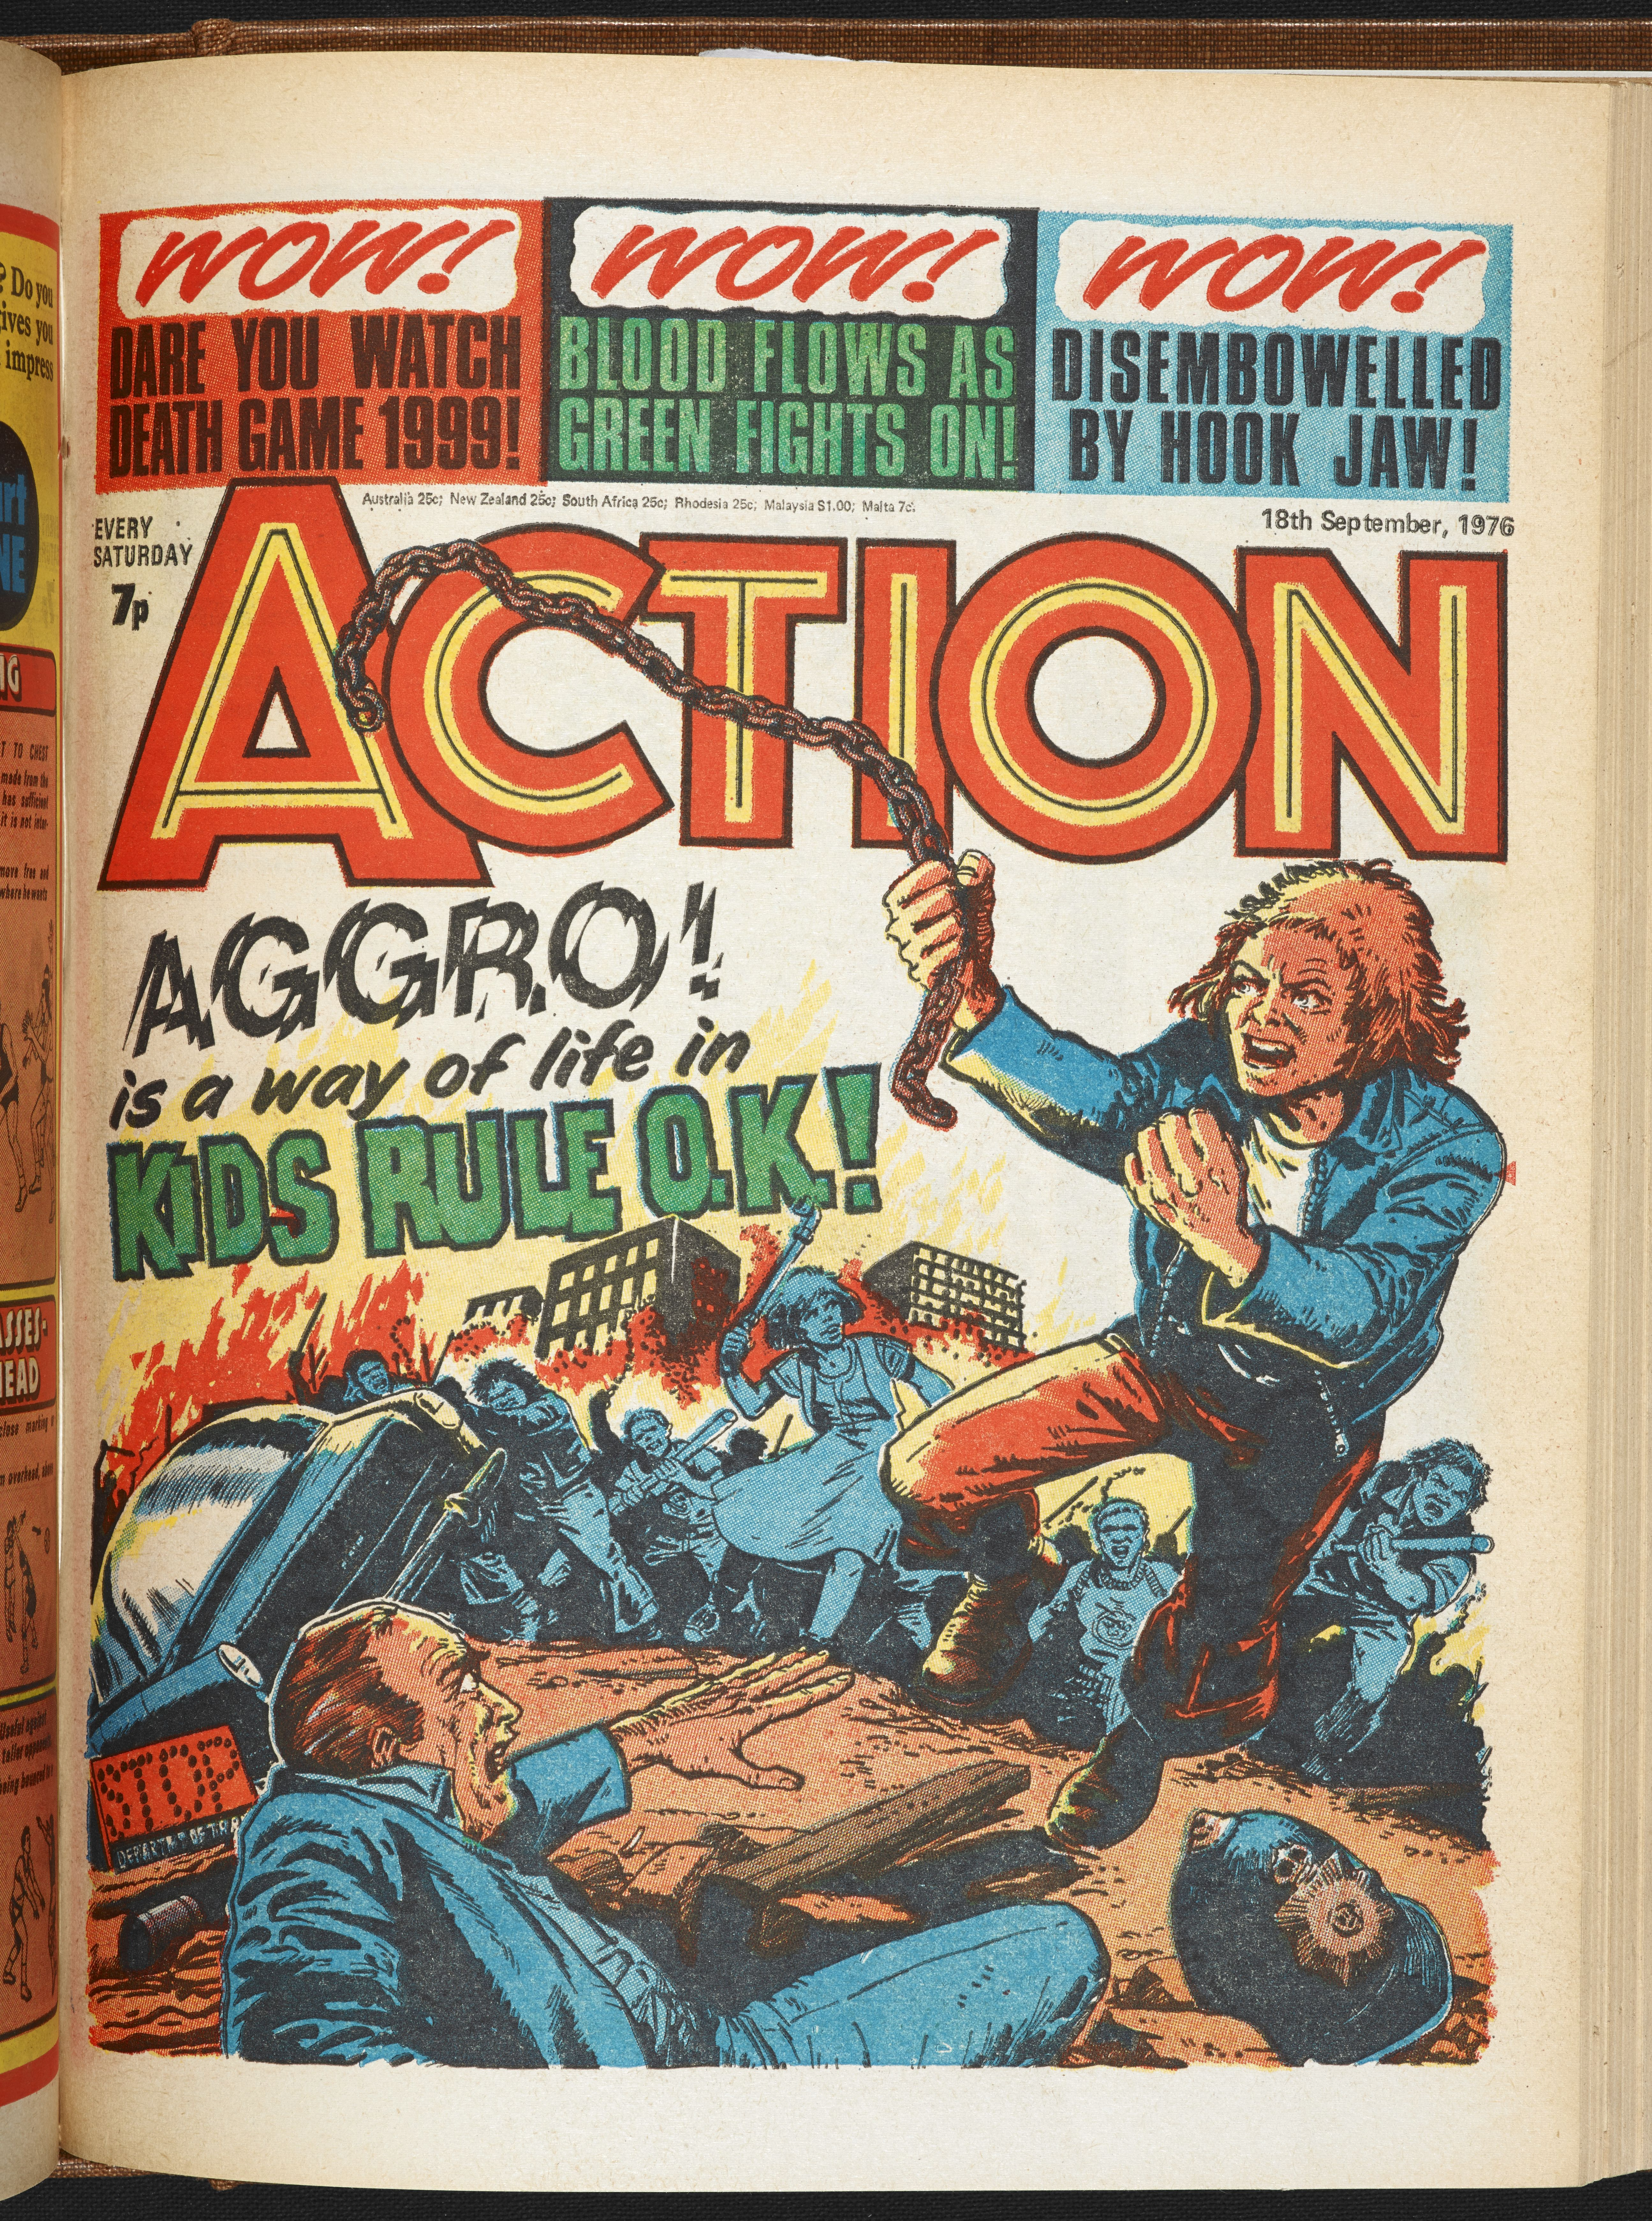 5. Action, 1976 -